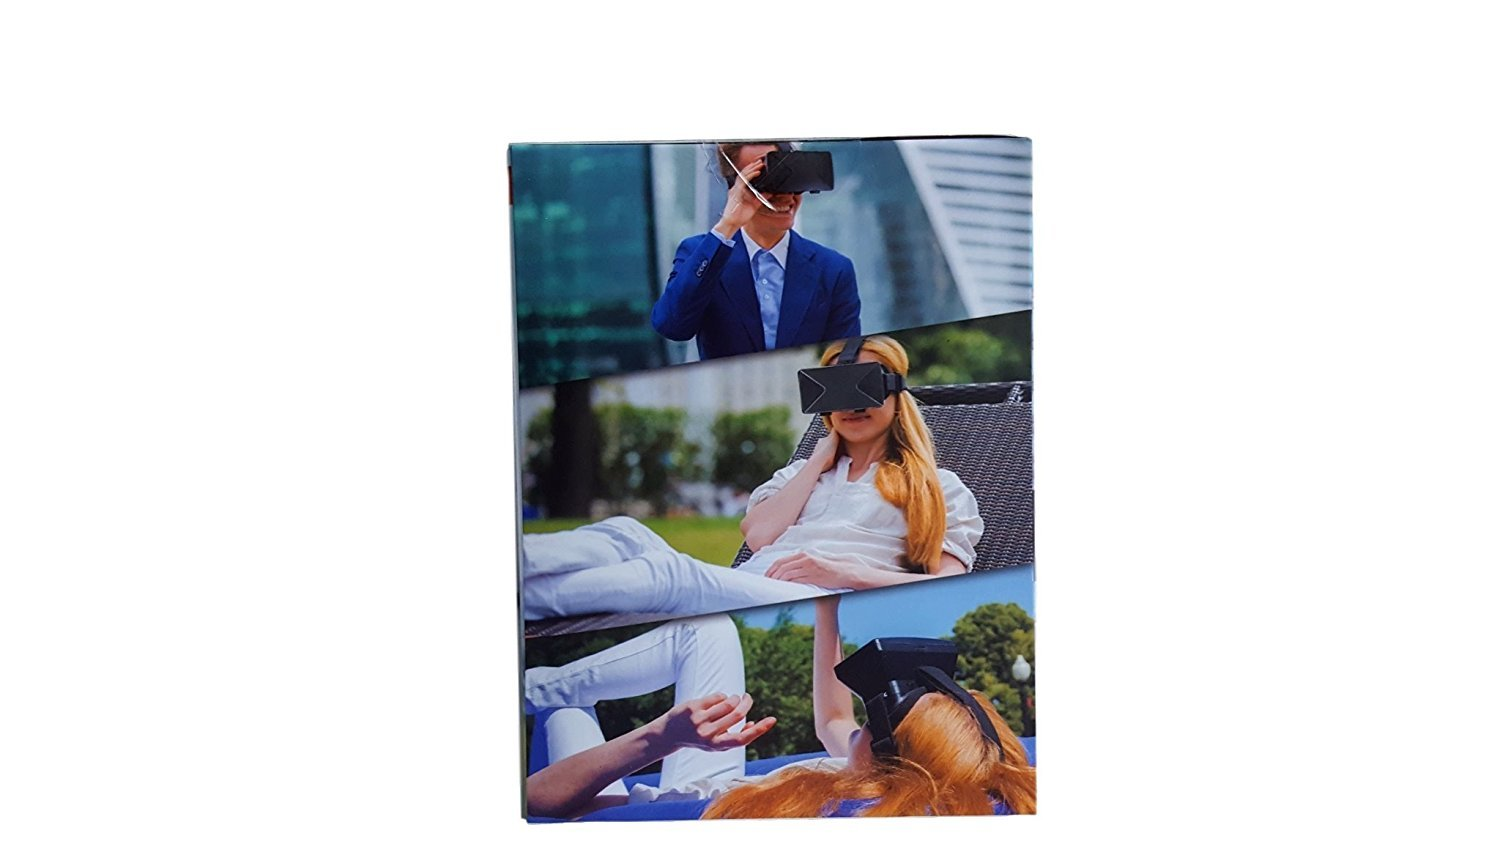 Amazon.com: VR Mask Virtual Reality Viewer for Mobile Phones Glasses Support iPhone Samsung and Other 3.5-6 Inch Smart Phones(Black): Toys & Games